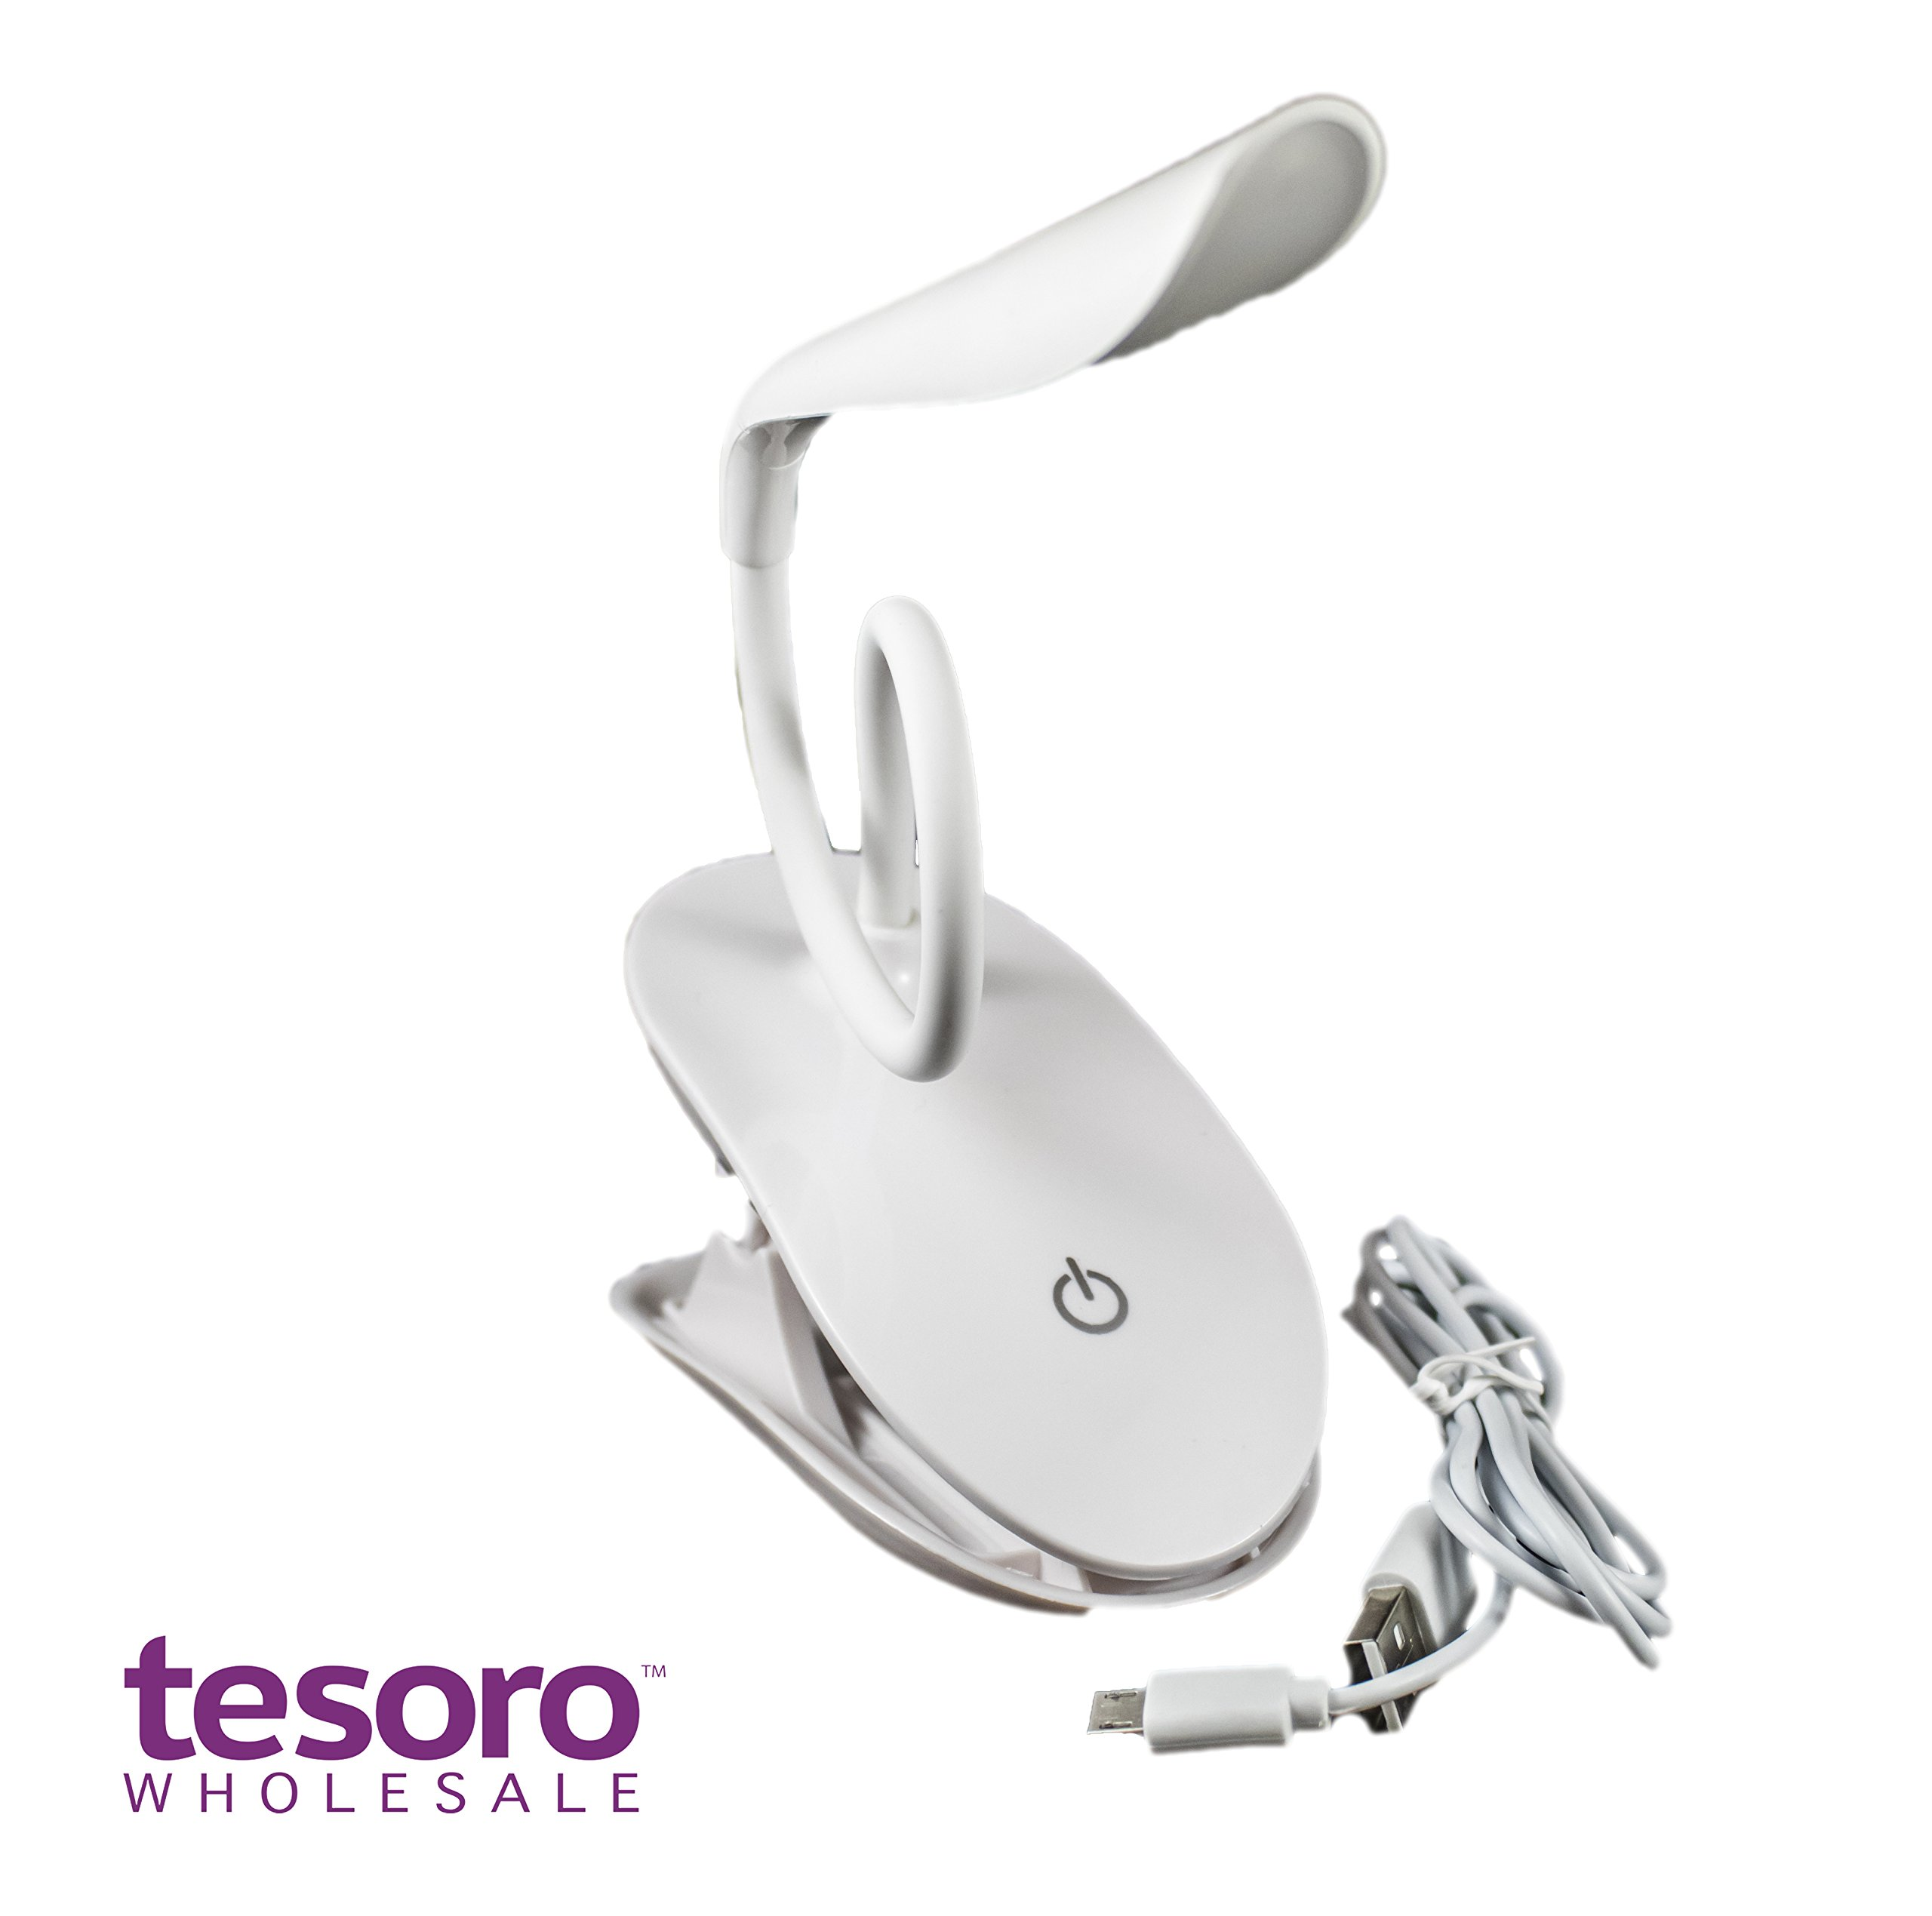 Clip-on Book Light Reading Lamp, Portable Table Light, Adjustable Led Clip Light, Anti Glare Reading Light, USB Rechargeable Computer Desk Lamp, White Daylight Bed Light. by Tesoro Wholesale™ (Image #2)